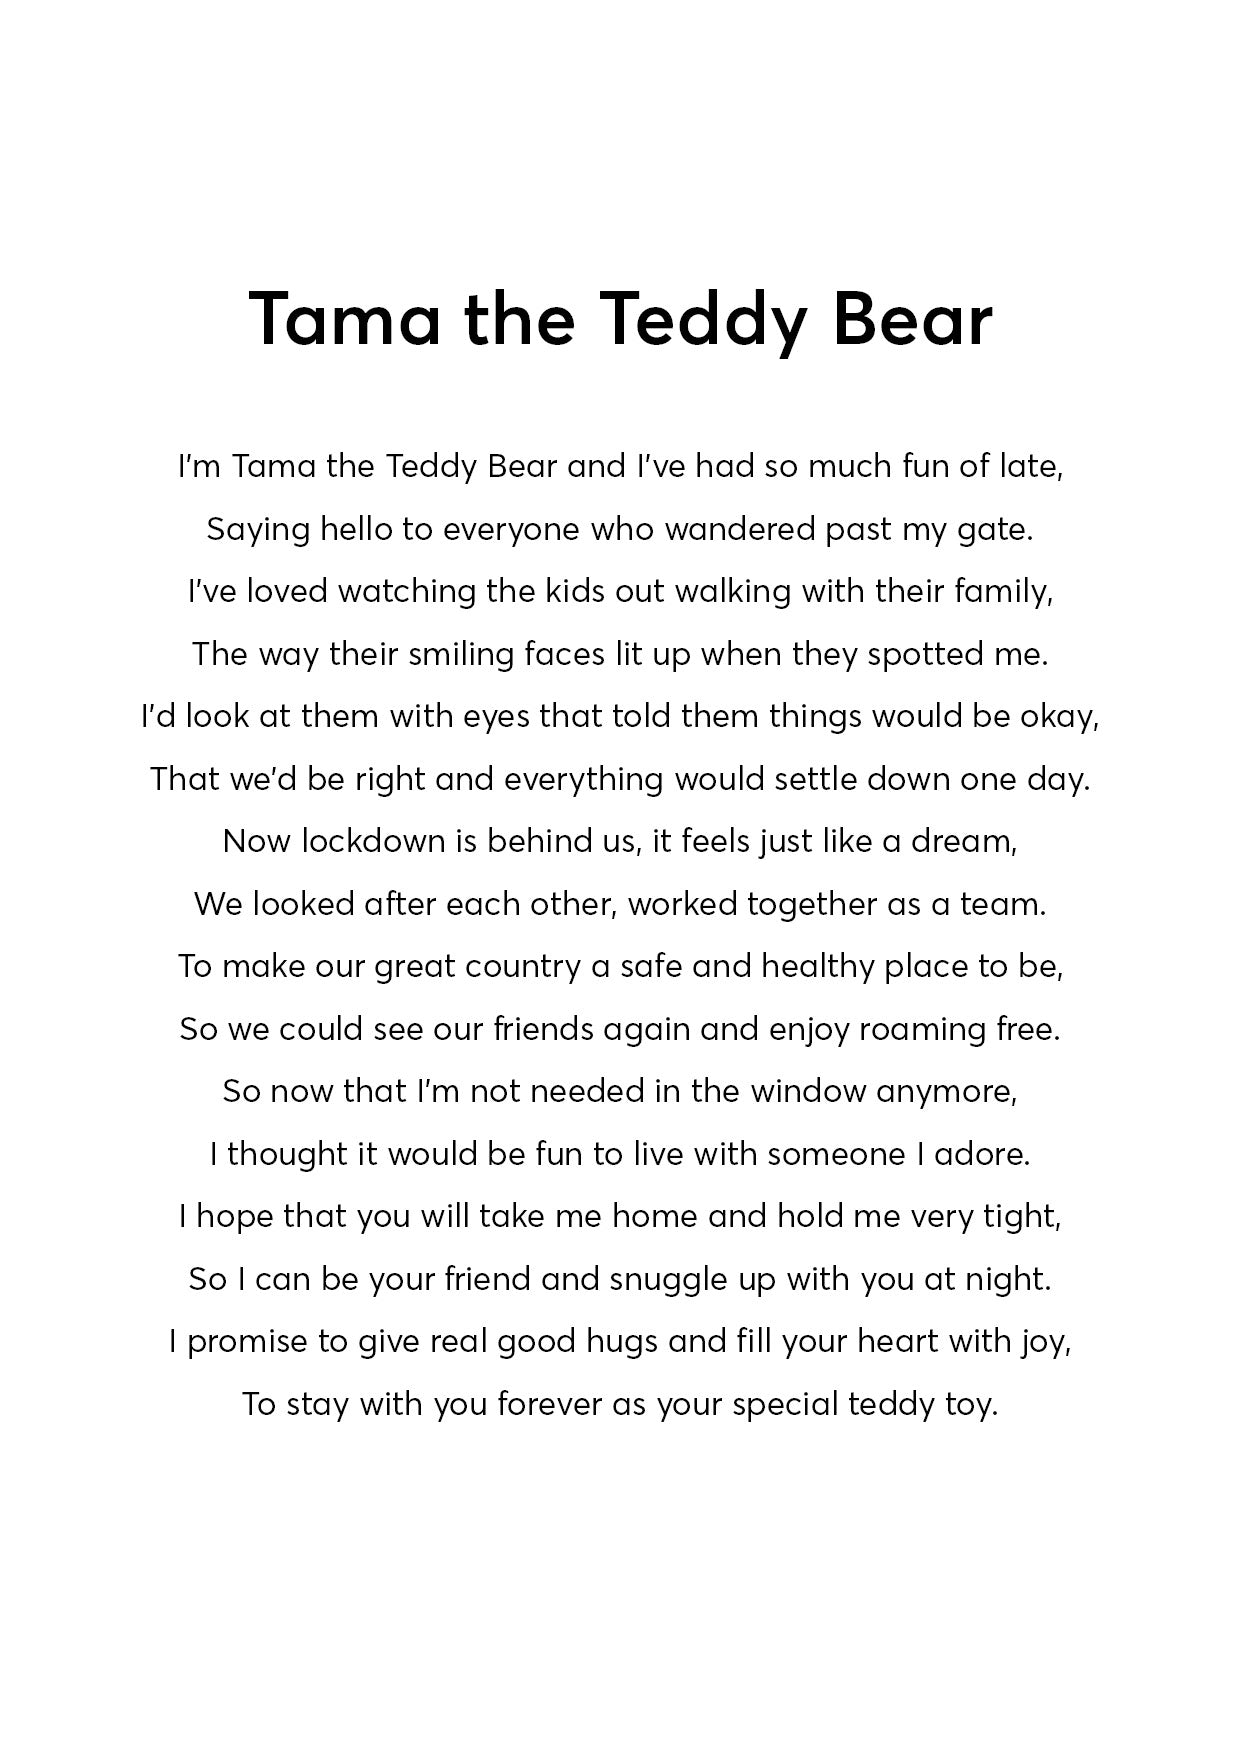 TAMA THE TEDDY